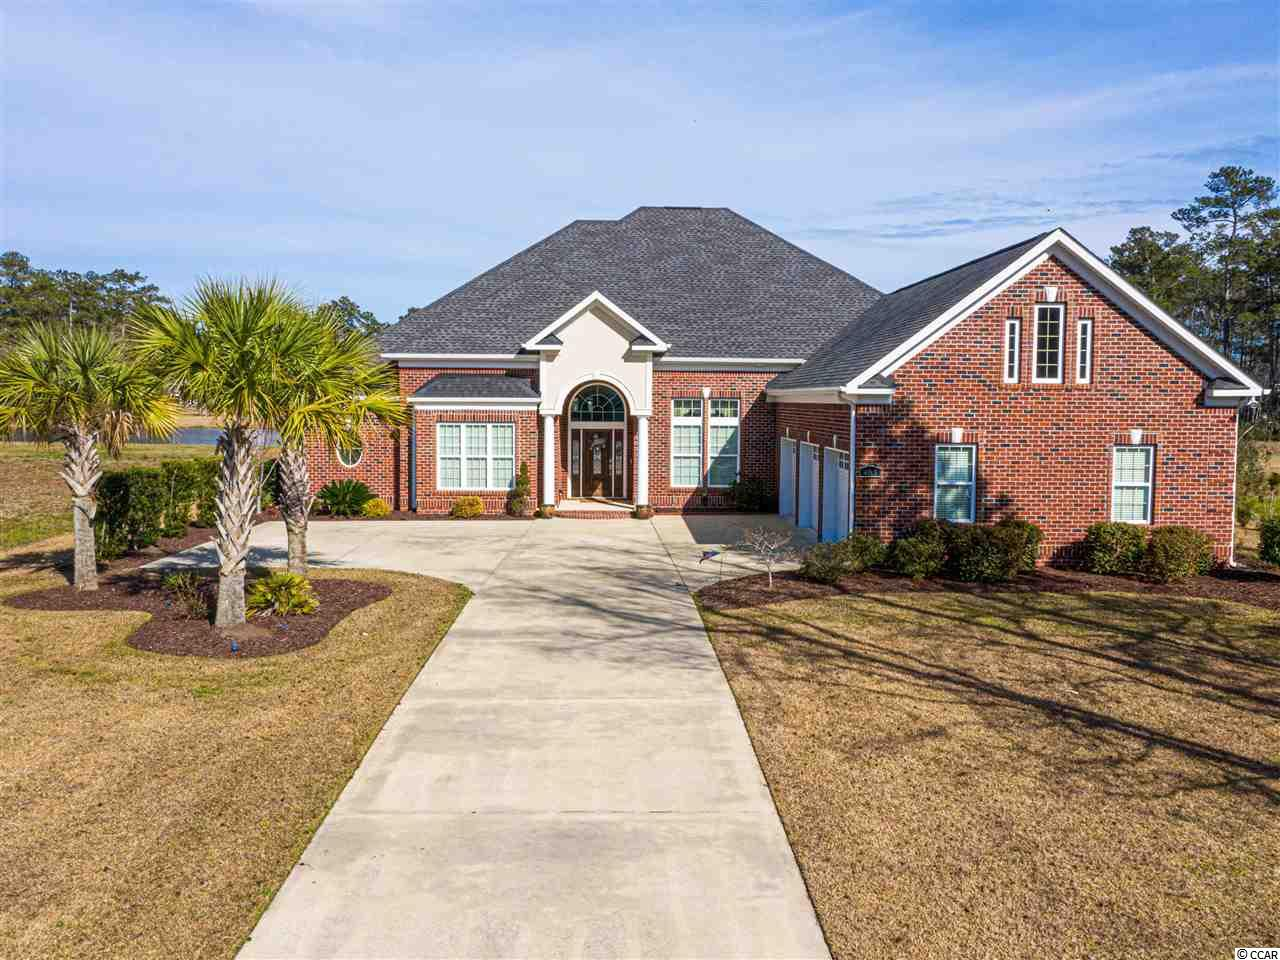 Stunning ALL BRICK RANCH HOME in Cypress River Plantation, A Prestigious Gated Waterway Community Known For Stunning Custom Homes & First Class Amenities. This Showplace & Entertainer's Delight Is Perfectly Positioned On A 1 Acre Lot With Large Backyard & BREATHTAKING LAKE VIEWS.  Features Include Gas Fireplace, 5-Burner Cook Top and Outside Grill Hookup. In The Cook's Kitchen You Will Find Custom Cabinets with Tons of Storage, Walk-in Pantry, Built-in Convection Oven and Microwave. Soaring Ceilings, with Trays in Kitchen, Dining Area, and Foyer.  The Well Appointed Master Suite Has Access to Outside Covered Lanai Overlooking the Lake. Custom Built-in Bookcases and Crown Molding throughout.  Large Walk-up Attic With Potential to Convert into Additional Living Space. Community Boat Launch and Day Docks.  This Home Was CUSTOM BUILT BY RESPECTED LOCAL BUILDER.  Cypress River Plantation Is A Gated Community That Features 24/7 Security, Clubhouse, Resort-Style Saltwater Pool, Basketball Court, Tennis Court, Sidewalks, Private Access To The ICW With Boat Launch, & Boat/RV Storage.  Conveniently located just Minutes from the Beach, Marshwalk, Shopping, Dining, Medical and Golf. Measurements & Sq. Ft. Approximate.